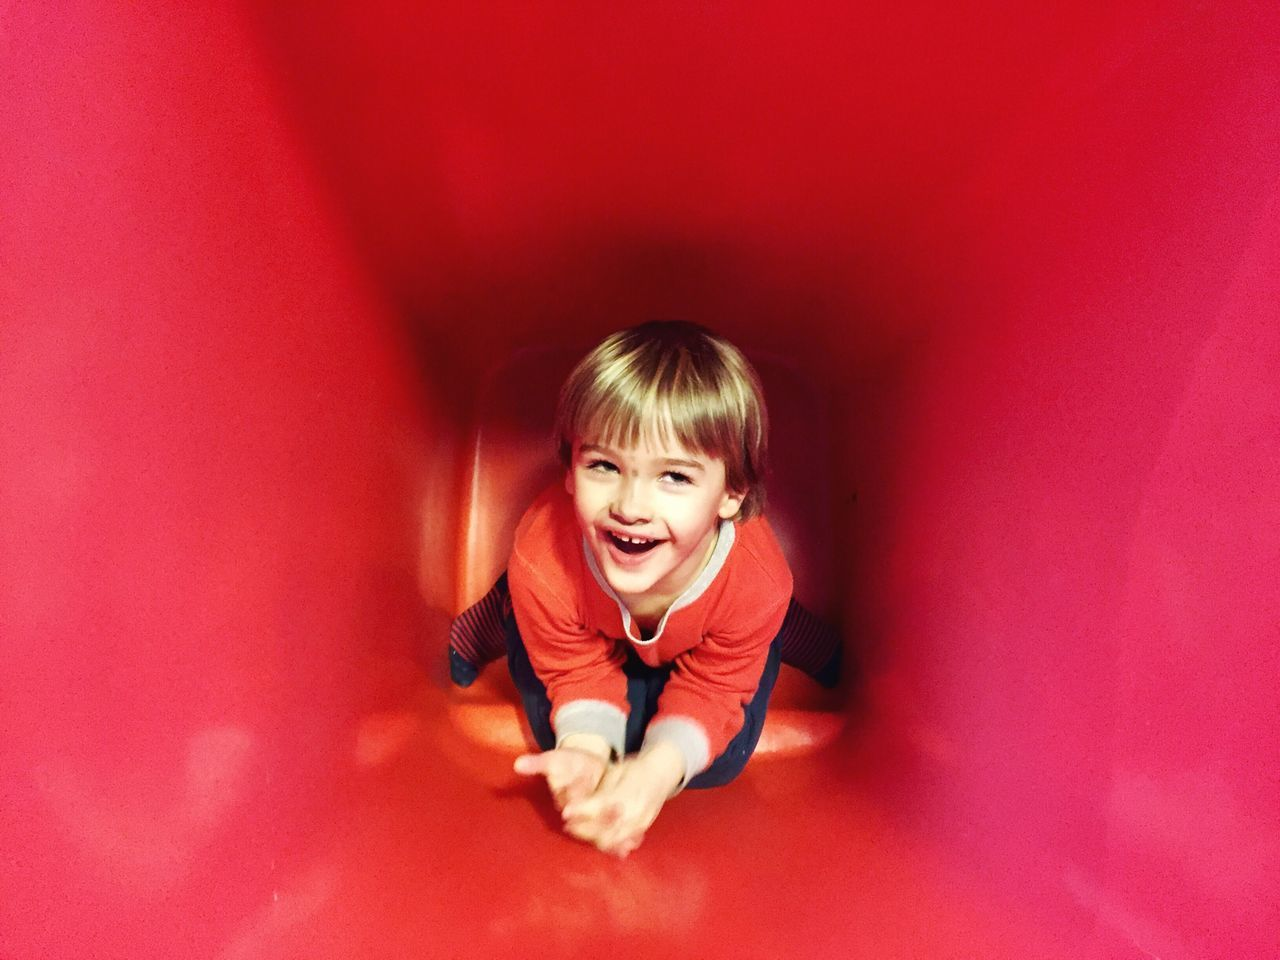 Childhood Red Child One Person Front View Smiling Looking At Camera Children Only Real People Indoors  Portrait Happiness Boy